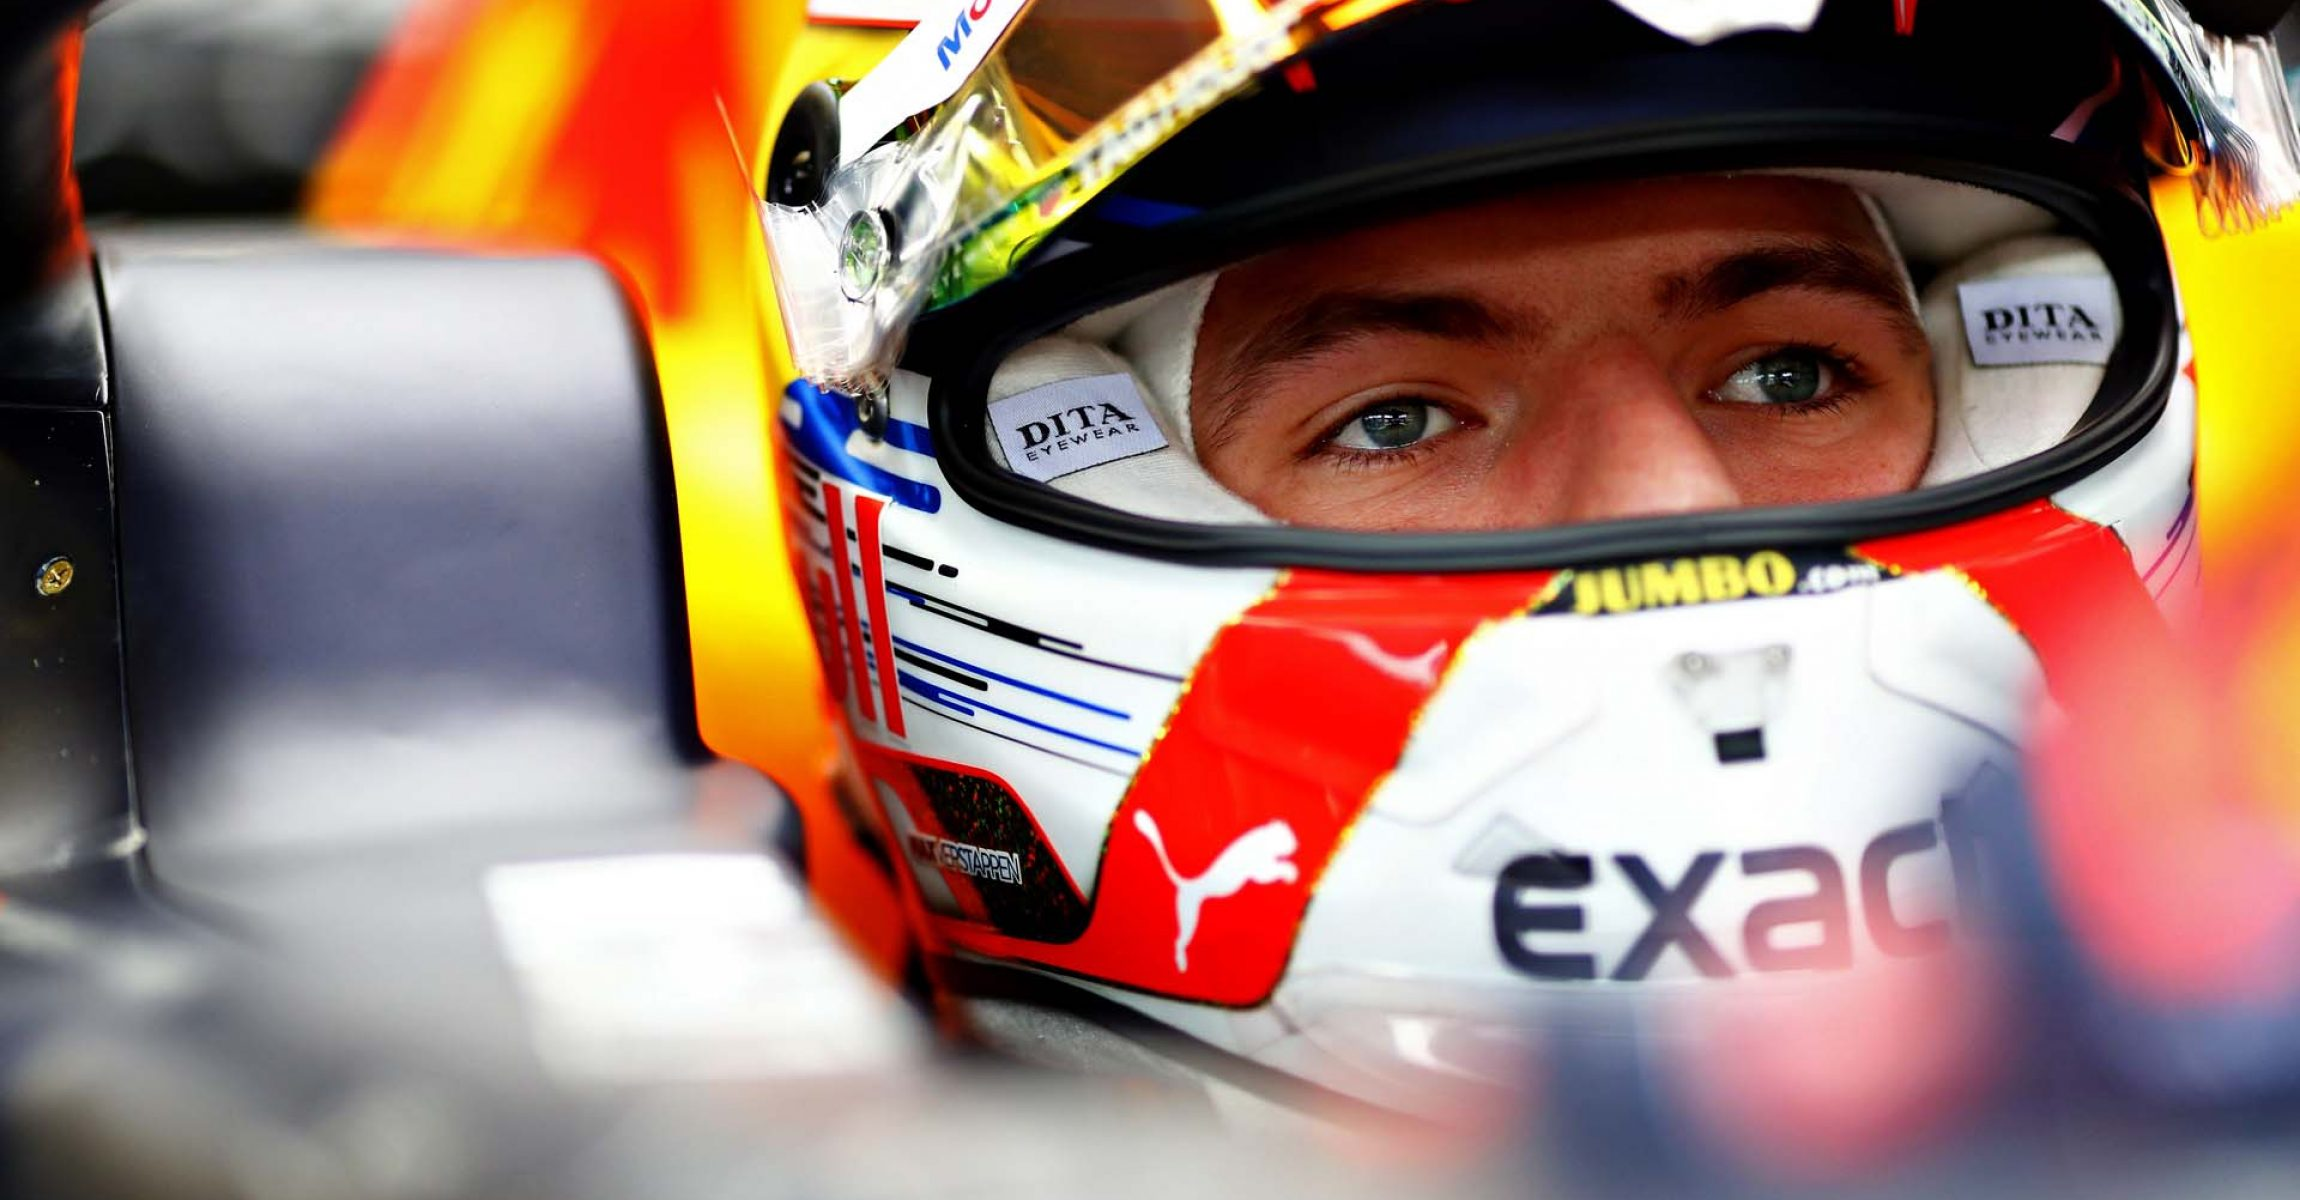 BUDAPEST, HUNGARY - AUGUST 02: Max Verstappen of Netherlands and Red Bull Racing prepares to drive in the garage during practice for the F1 Grand Prix of Hungary at Hungaroring on August 02, 2019 in Budapest, Hungary. (Photo by Mark Thompson/Getty Images) // Getty Images / Red Bull Content Pool  // AP-214V5MEGH2111 // Usage for editorial use only // Please go to www.redbullcontentpool.com for further information. //